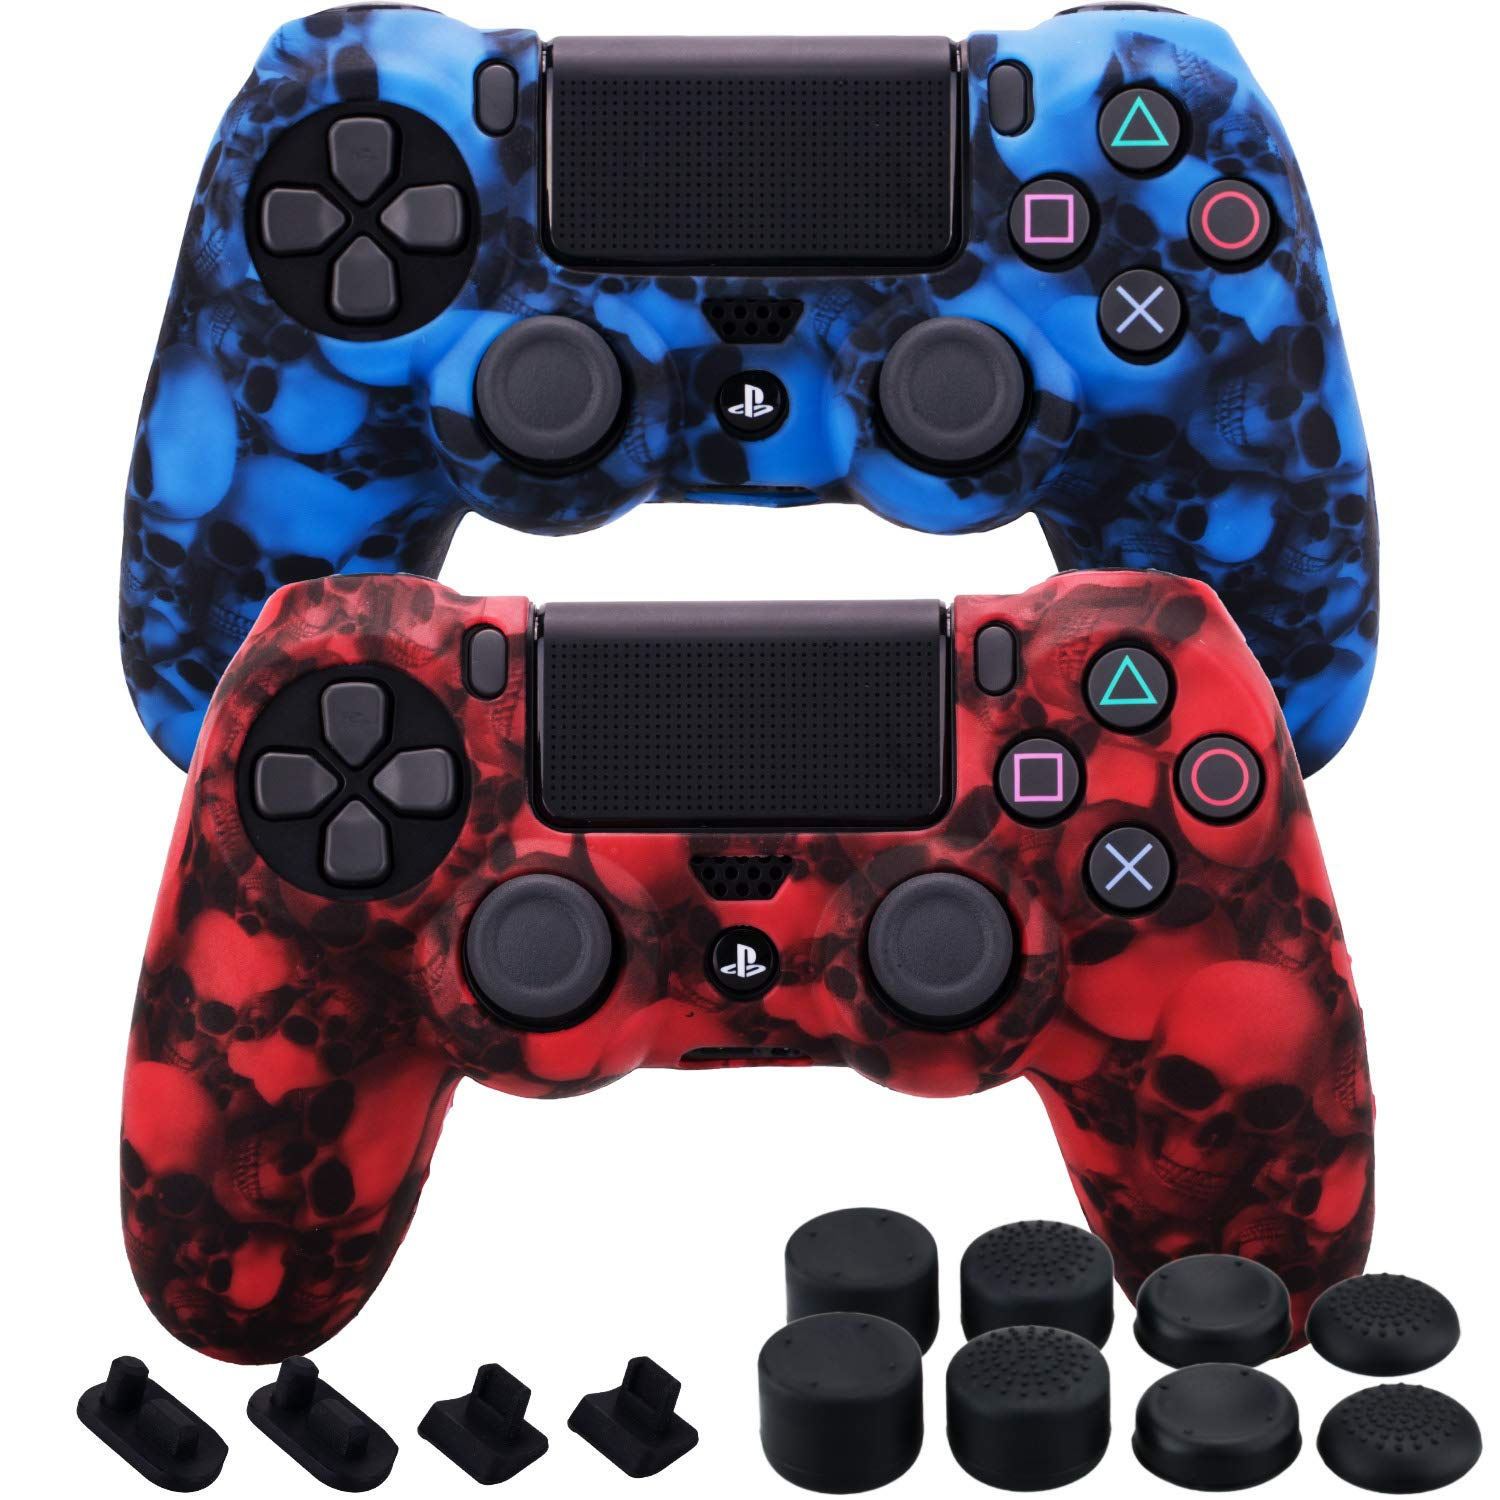 MXRC Silicone Rubber Cover Skin case Anti-Slip Water Transfer Customize Camouflage for PS4/SLIM/PRO Controller x 2 (Skull Red + Blue) + FPS PRO Extra Height Thumb Grips x 8 + Dustproof Plug x 4